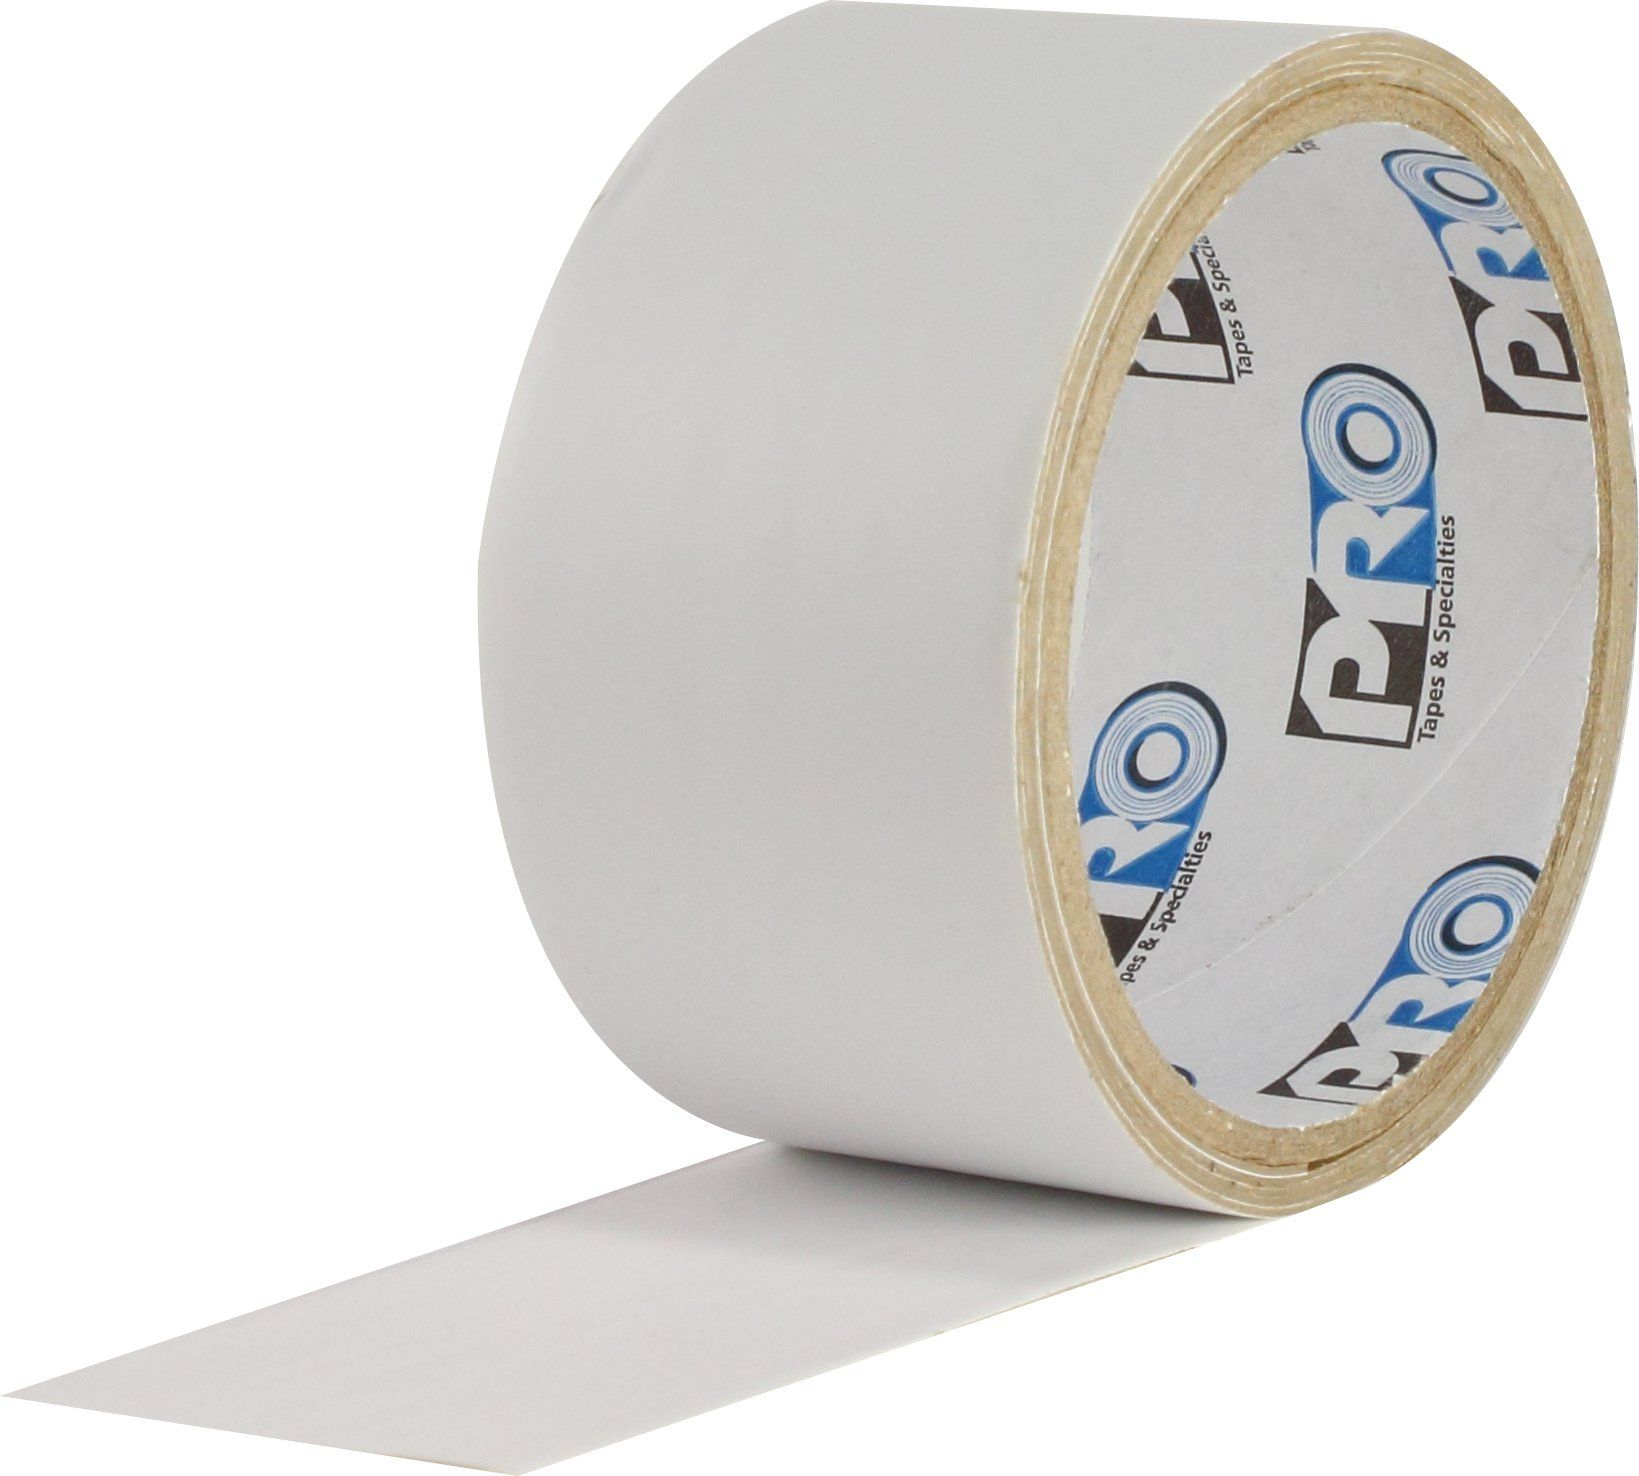 Protapes Pro Flex Flexible Butyl All Weather Patch And Shield Repair Tape 50 Length X 2 Width White Pack Of 1 Ad Buty Waterproof Tape Repair Tape Tape